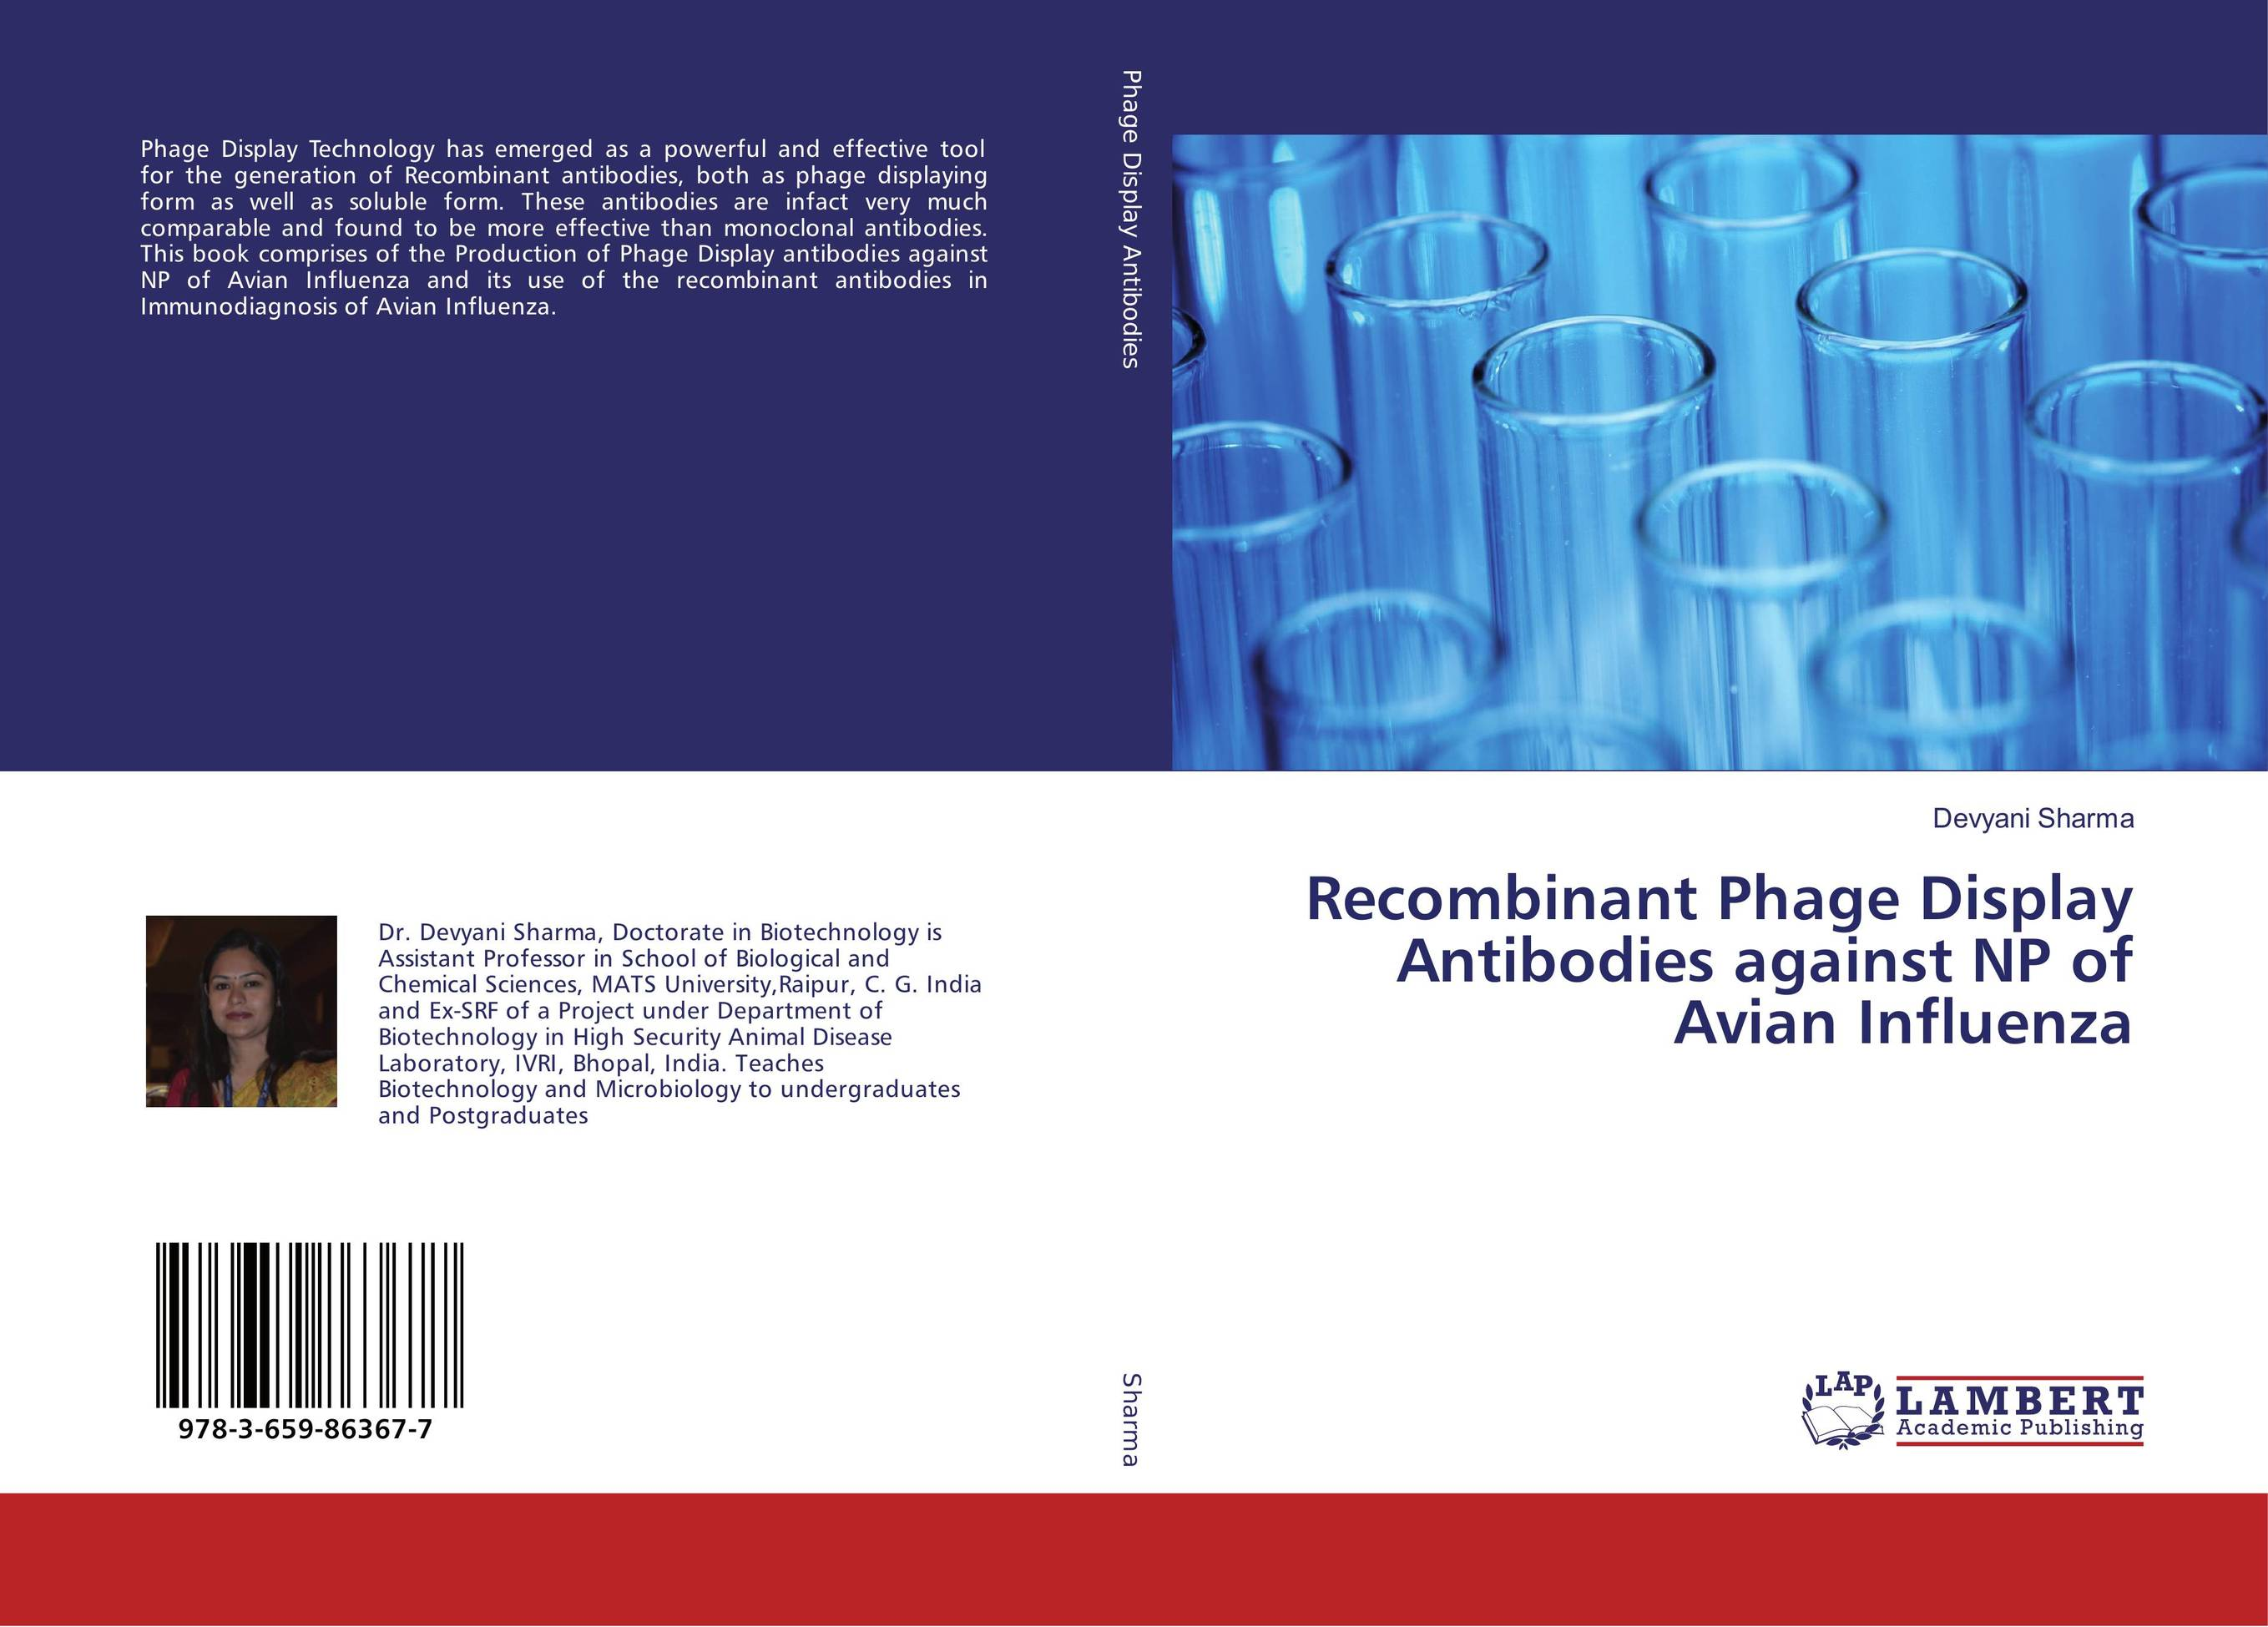 Recombinant Phage Display Antibodies against NP of Avian Influenza production of recombinant rankl for in vitro osteoclastogenesis